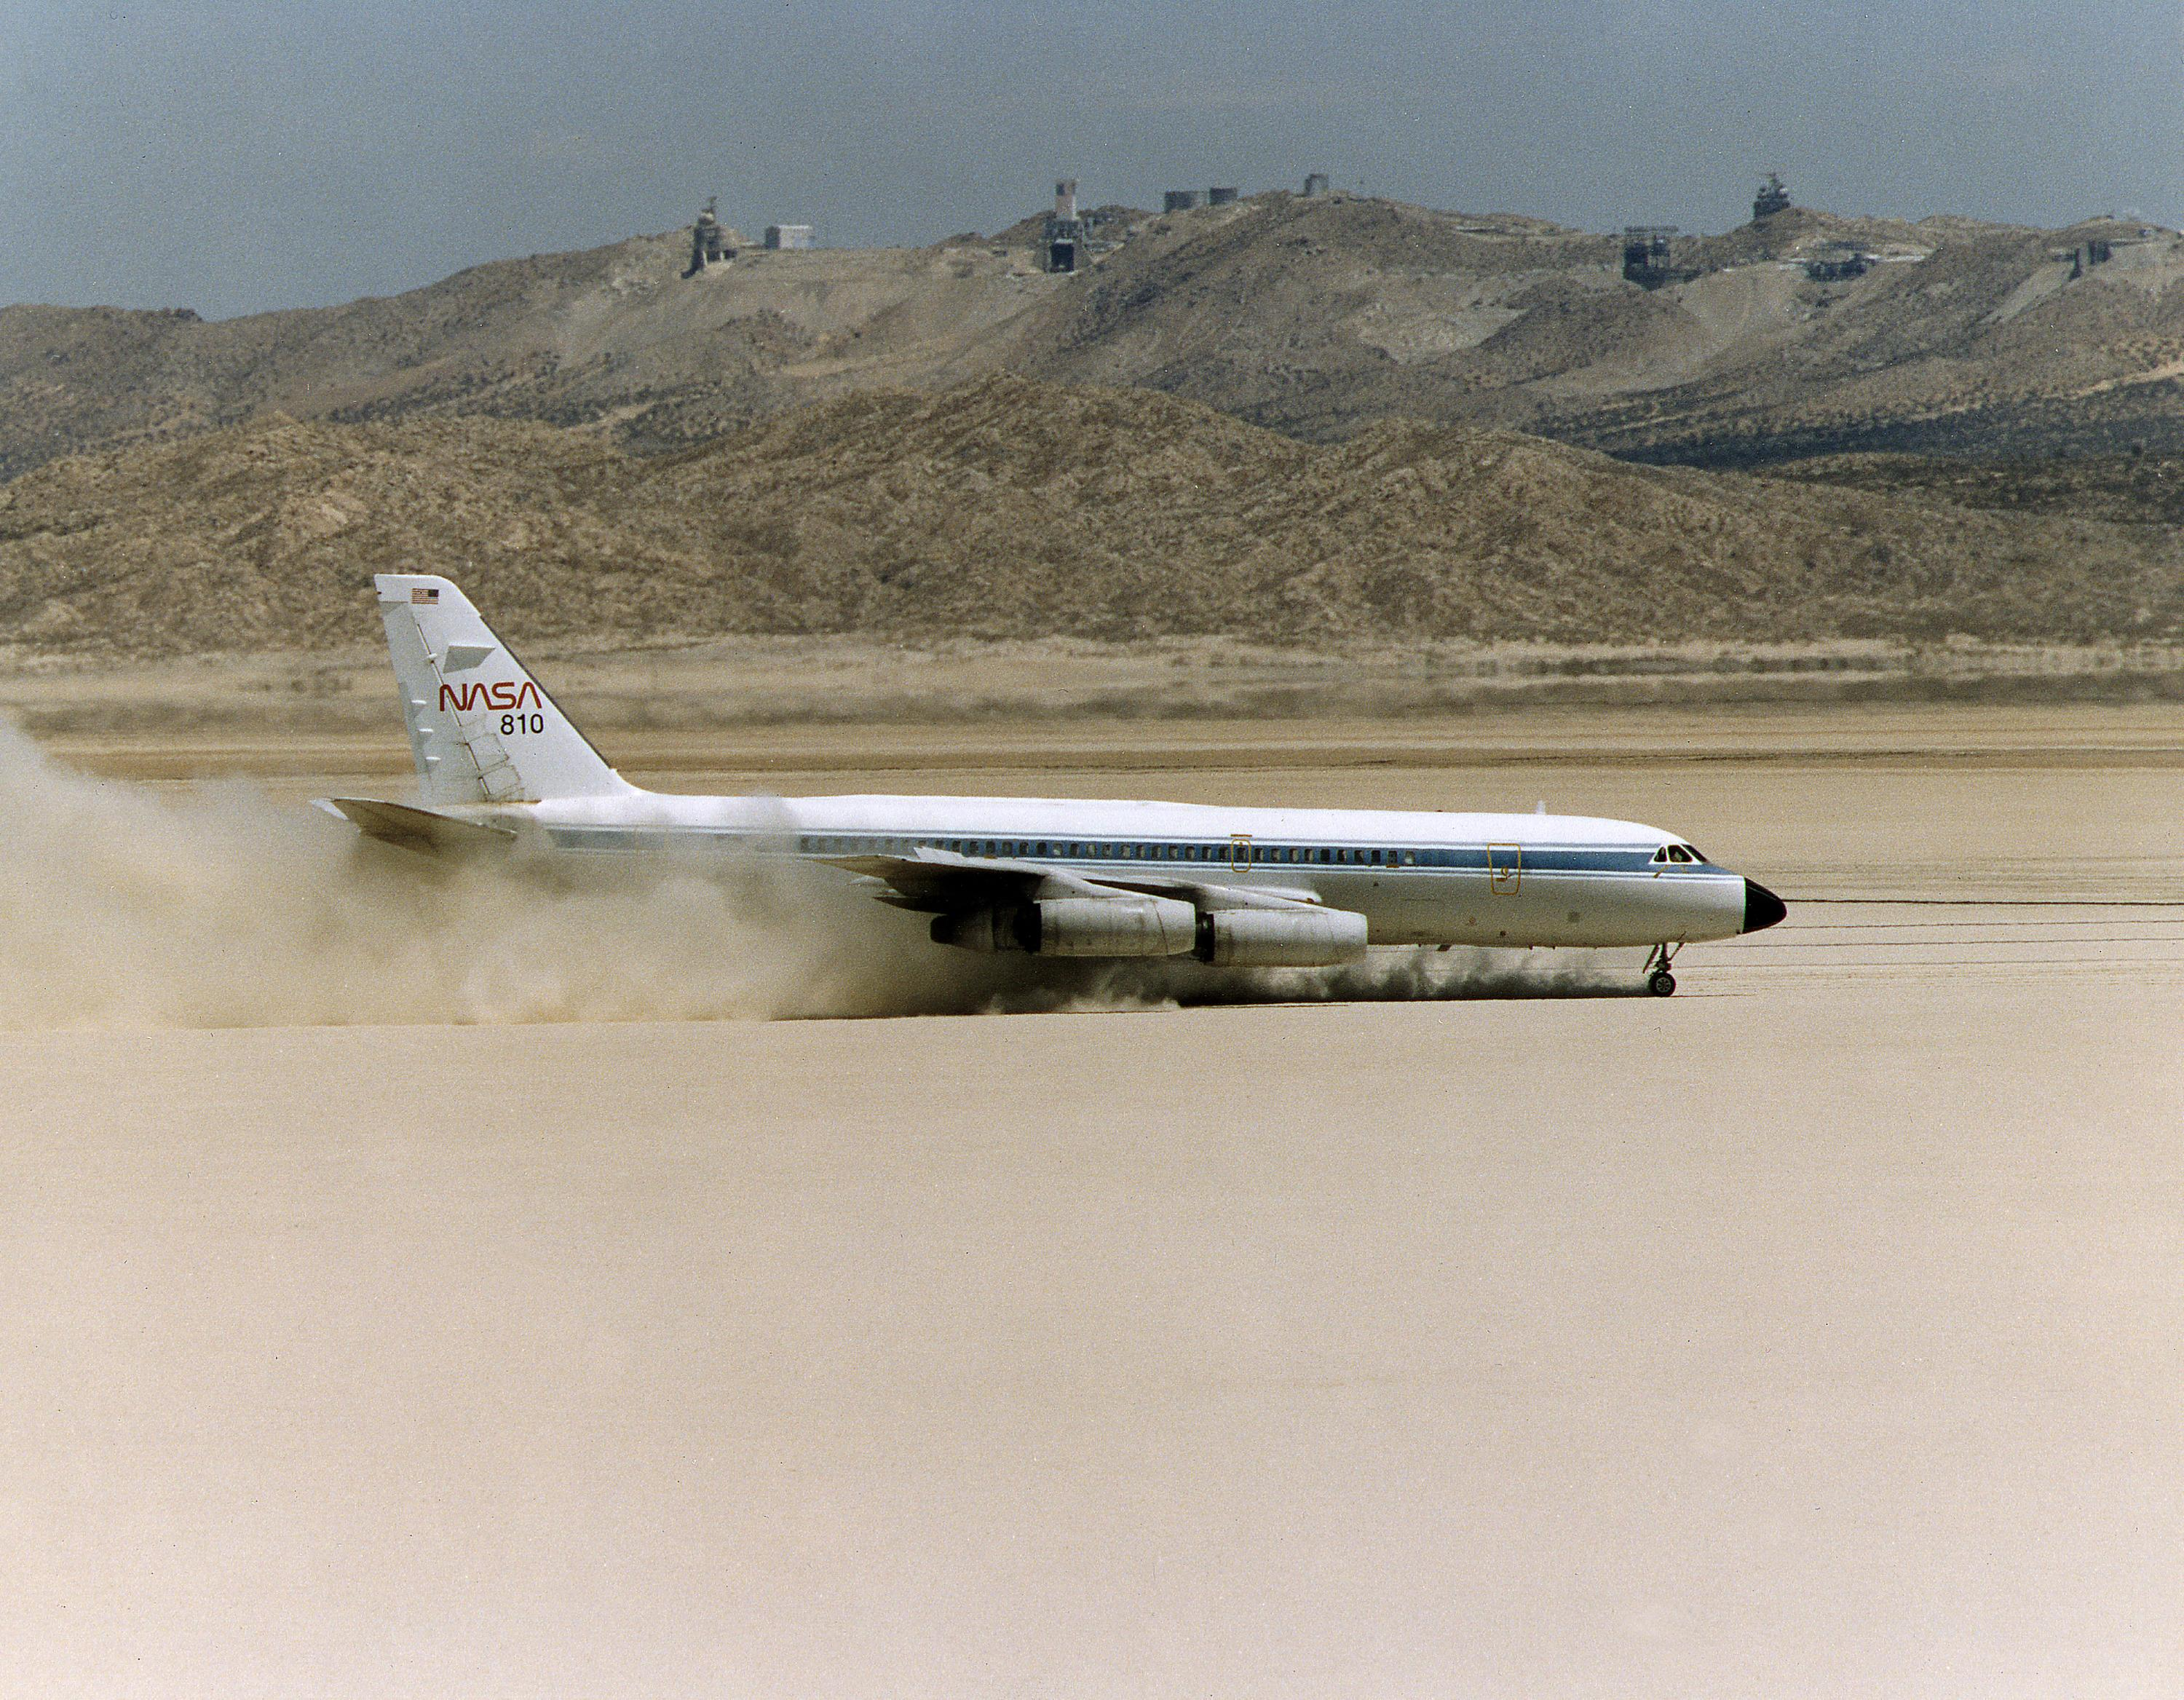 space shuttle landing at edwards air force base - photo #25